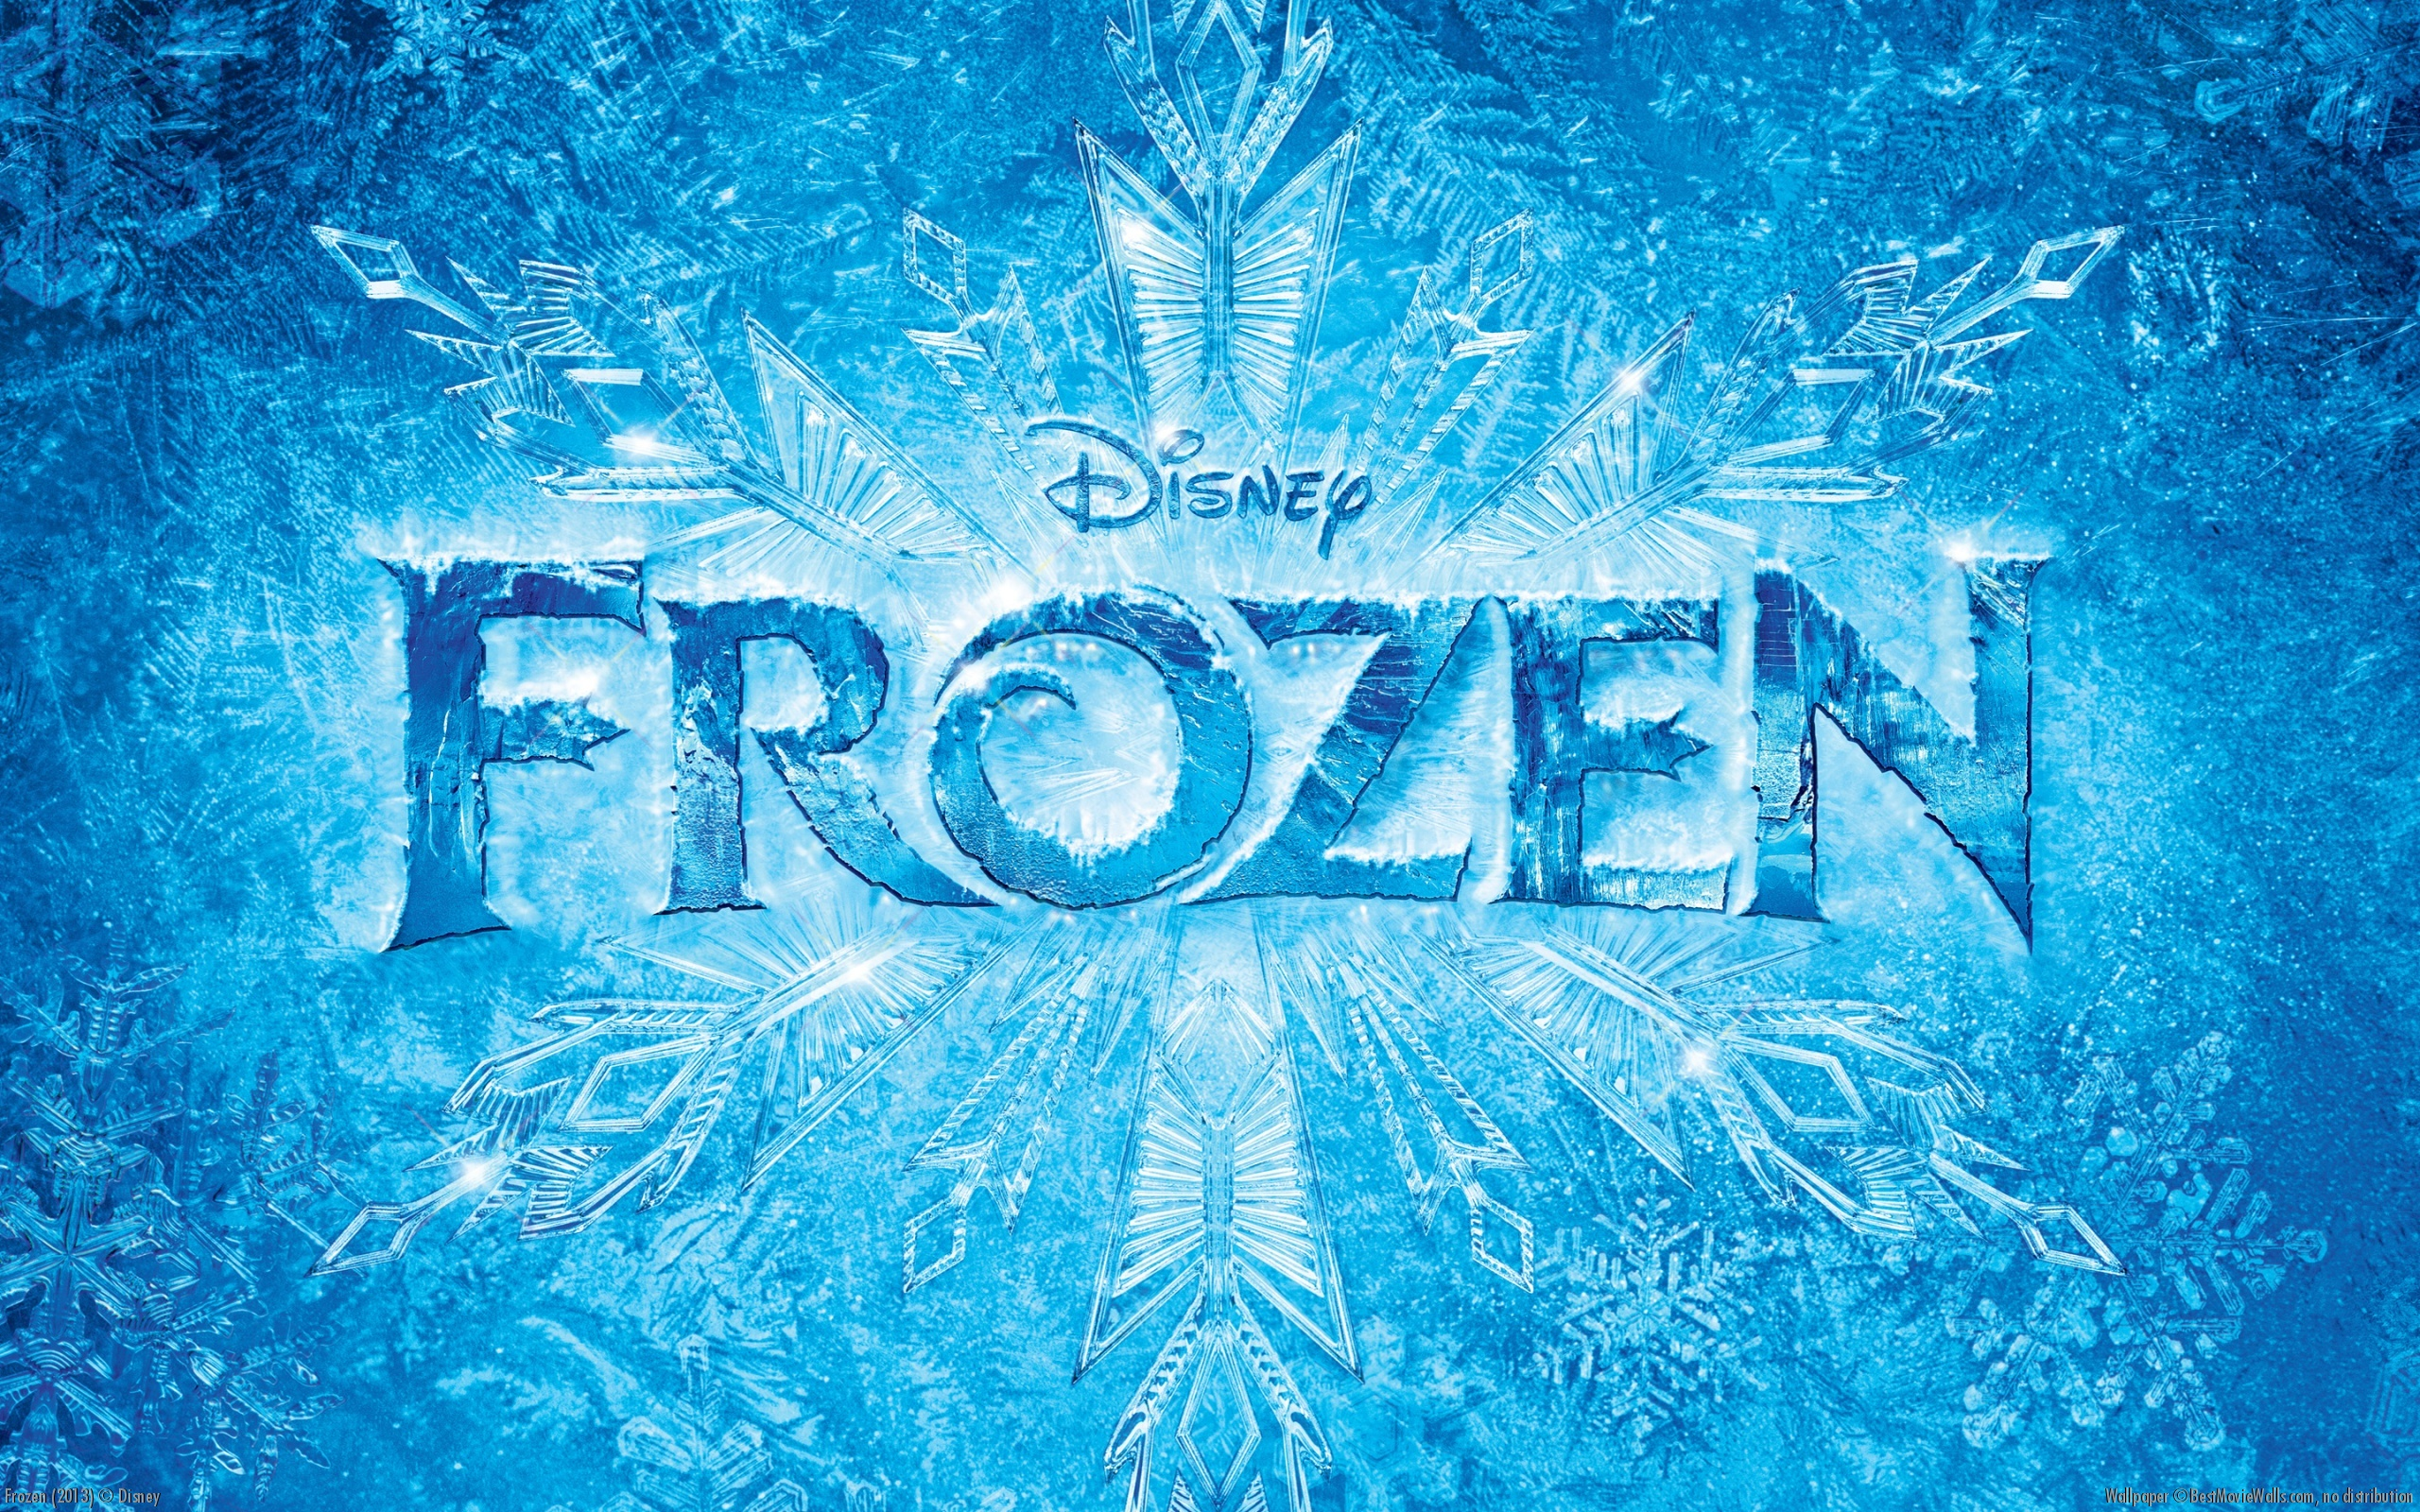 Without further adieu here are 9 of their Frozen wallpapers in the 2560x1600